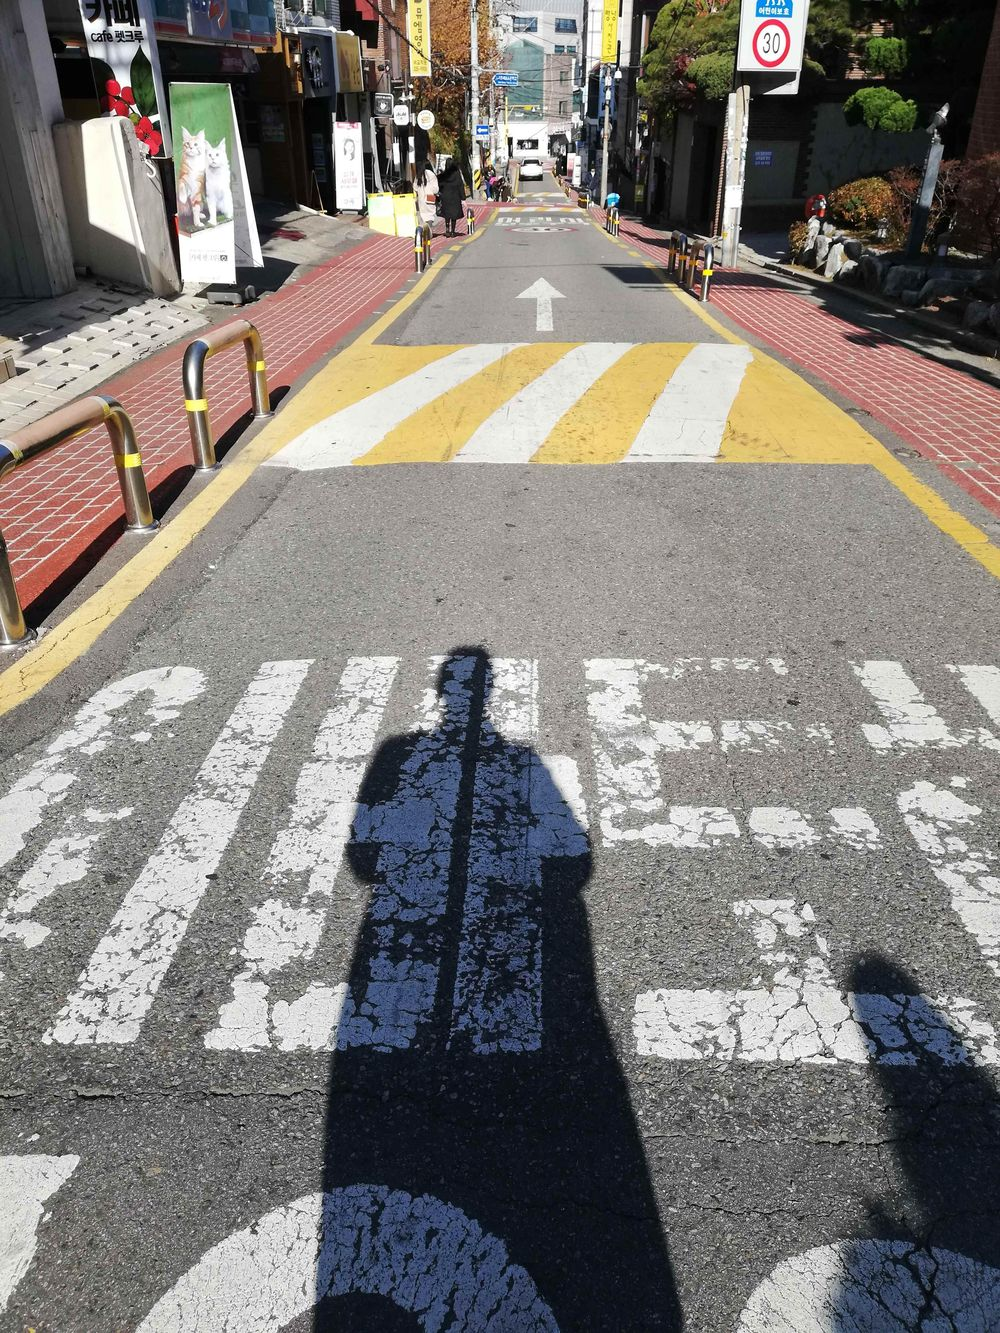 Random places in Seoul, South Korea - image 5 - student project